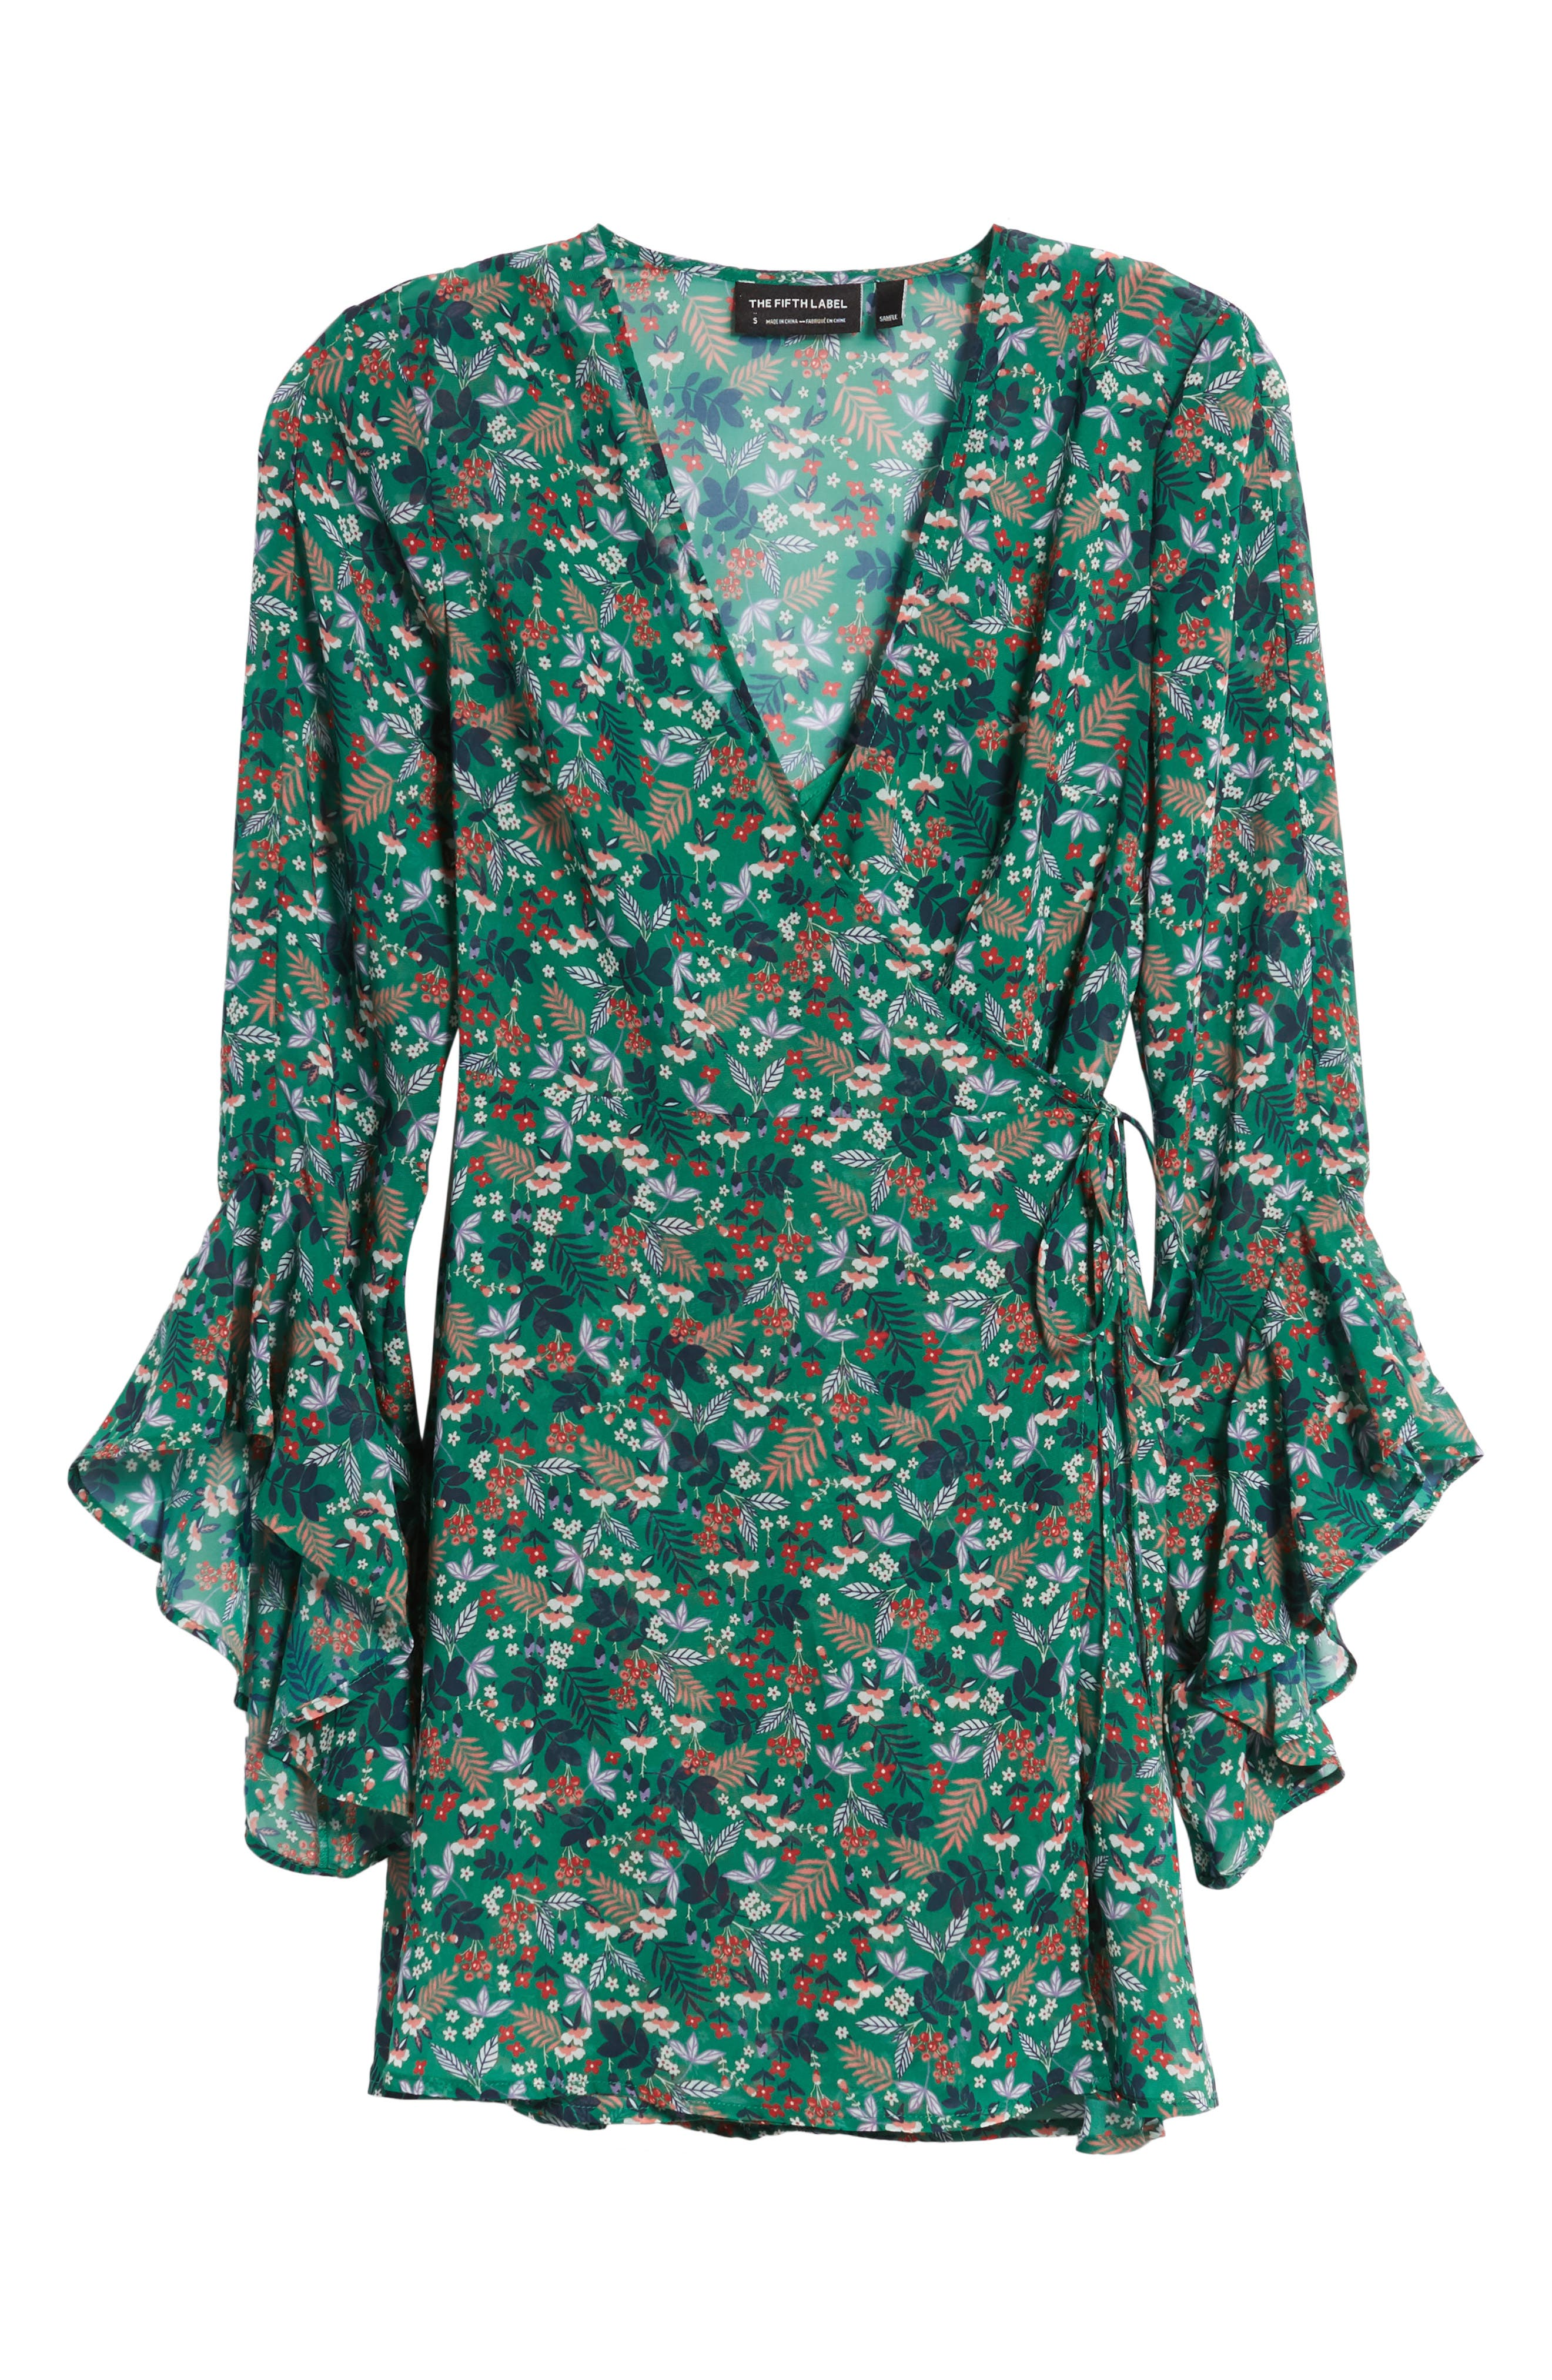 Viridian Floral Wrap Dress,                             Alternate thumbnail 6, color,                             305